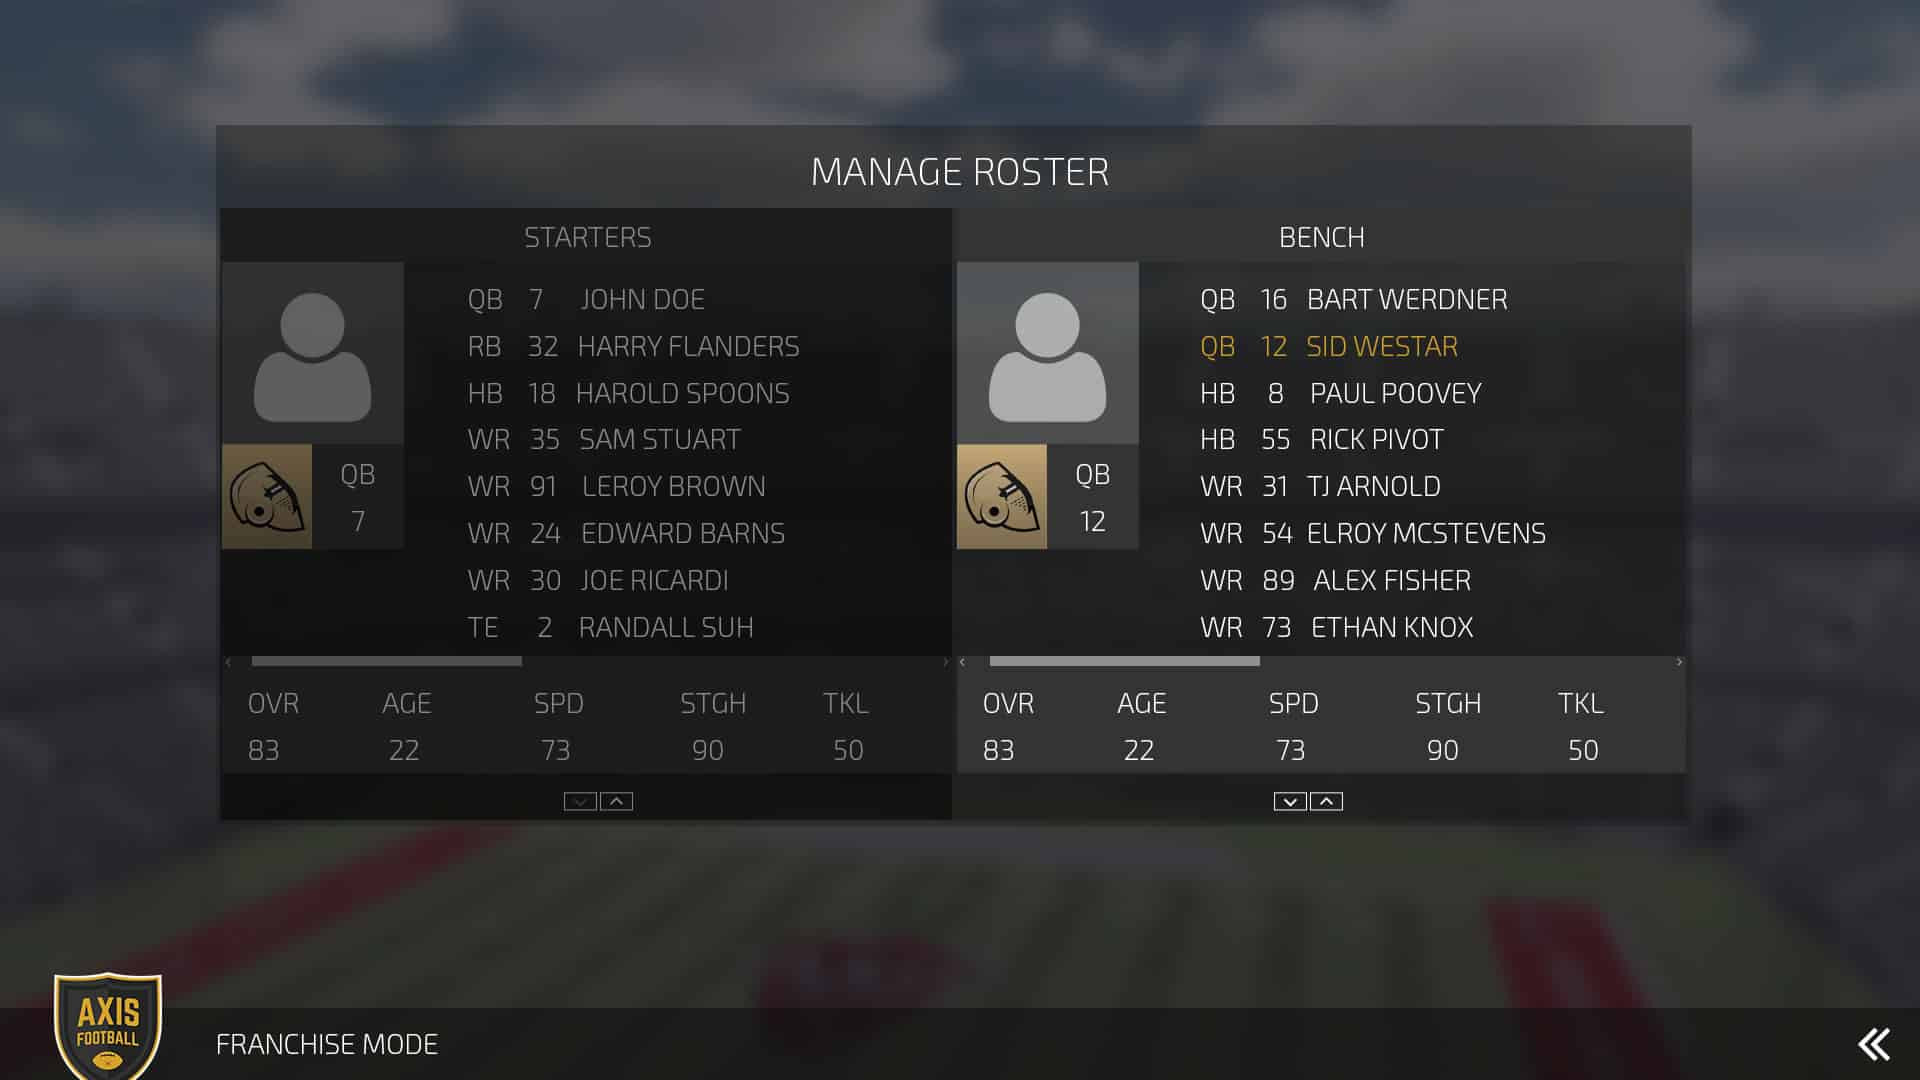 selectbench_franchise_ManageRoster_AxisFootball_UI_1920x1080